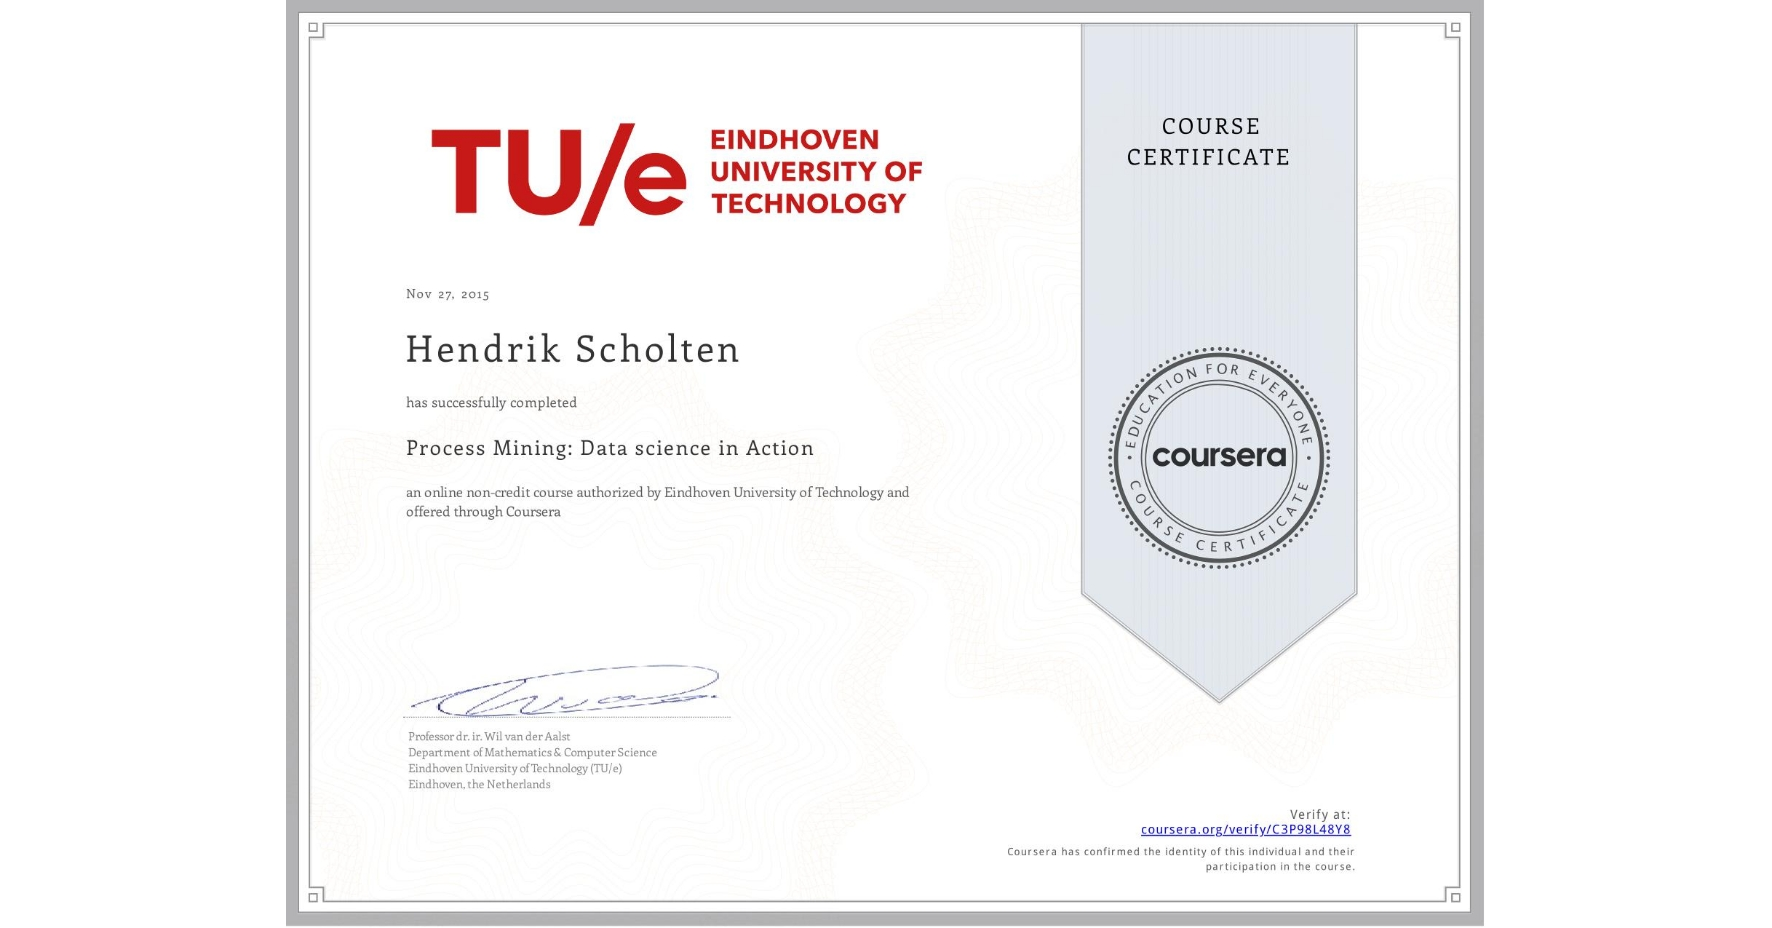 View certificate for Hendrik Scholten, Process Mining: Data science in Action, an online non-credit course authorized by Eindhoven University of Technology and offered through Coursera